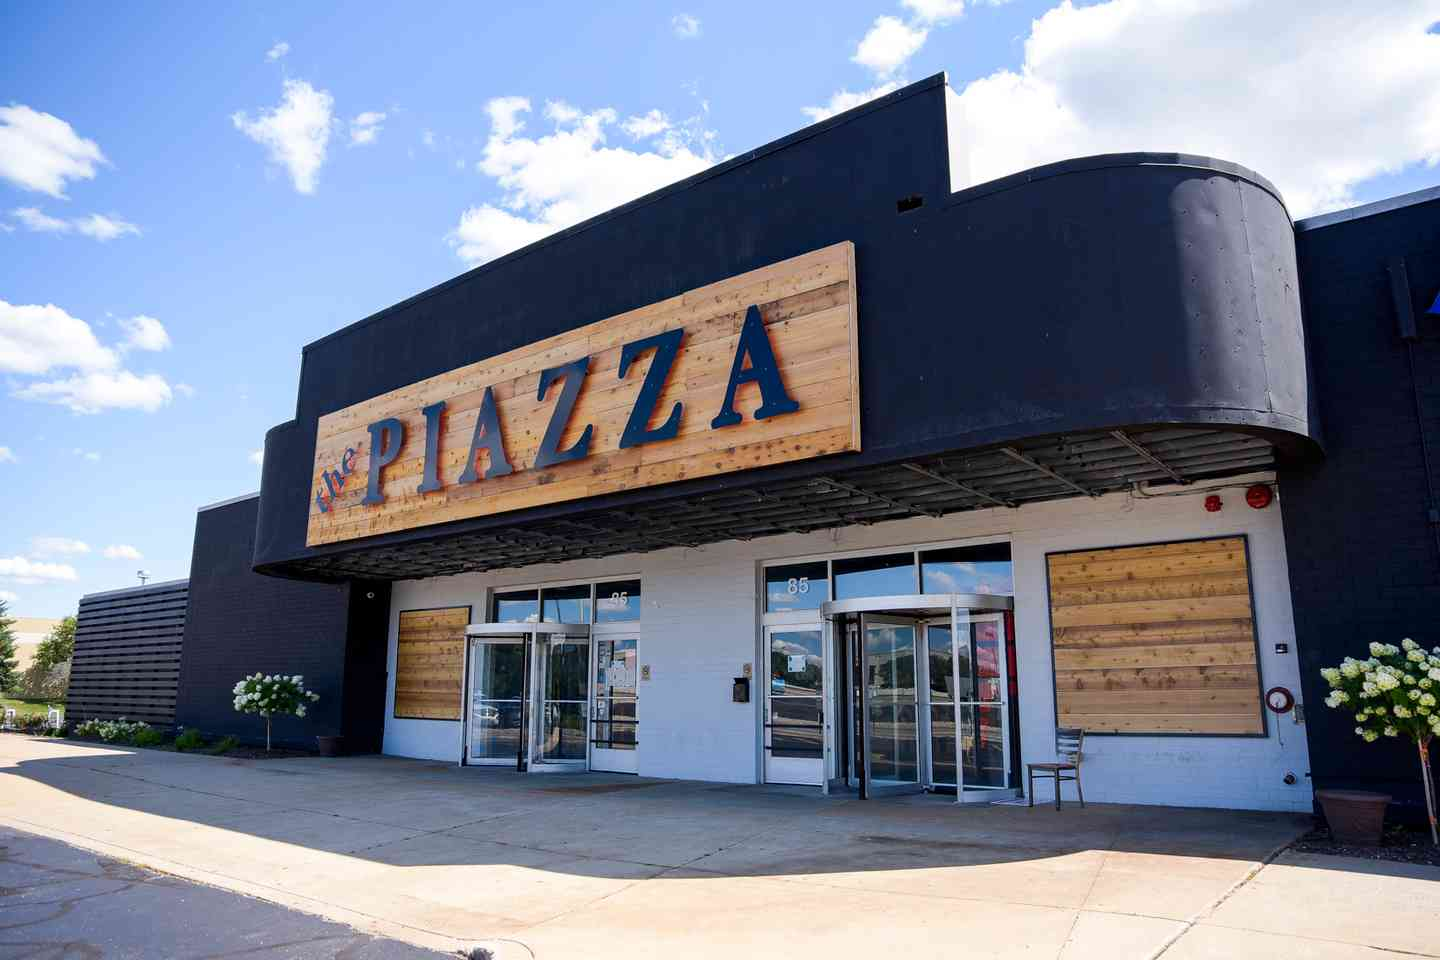 the PIAZZA front - Day